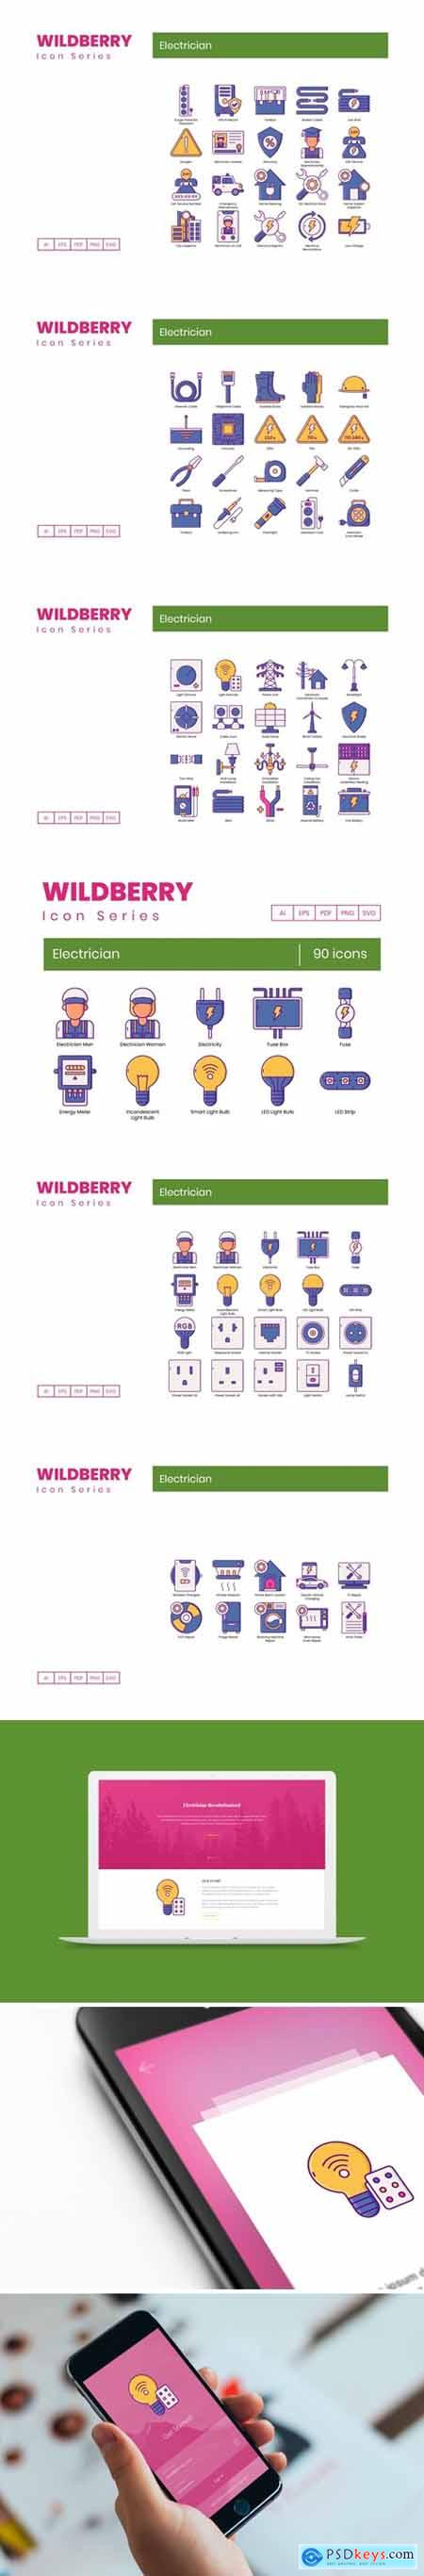 90 Electrician Icons - Wildberry Series